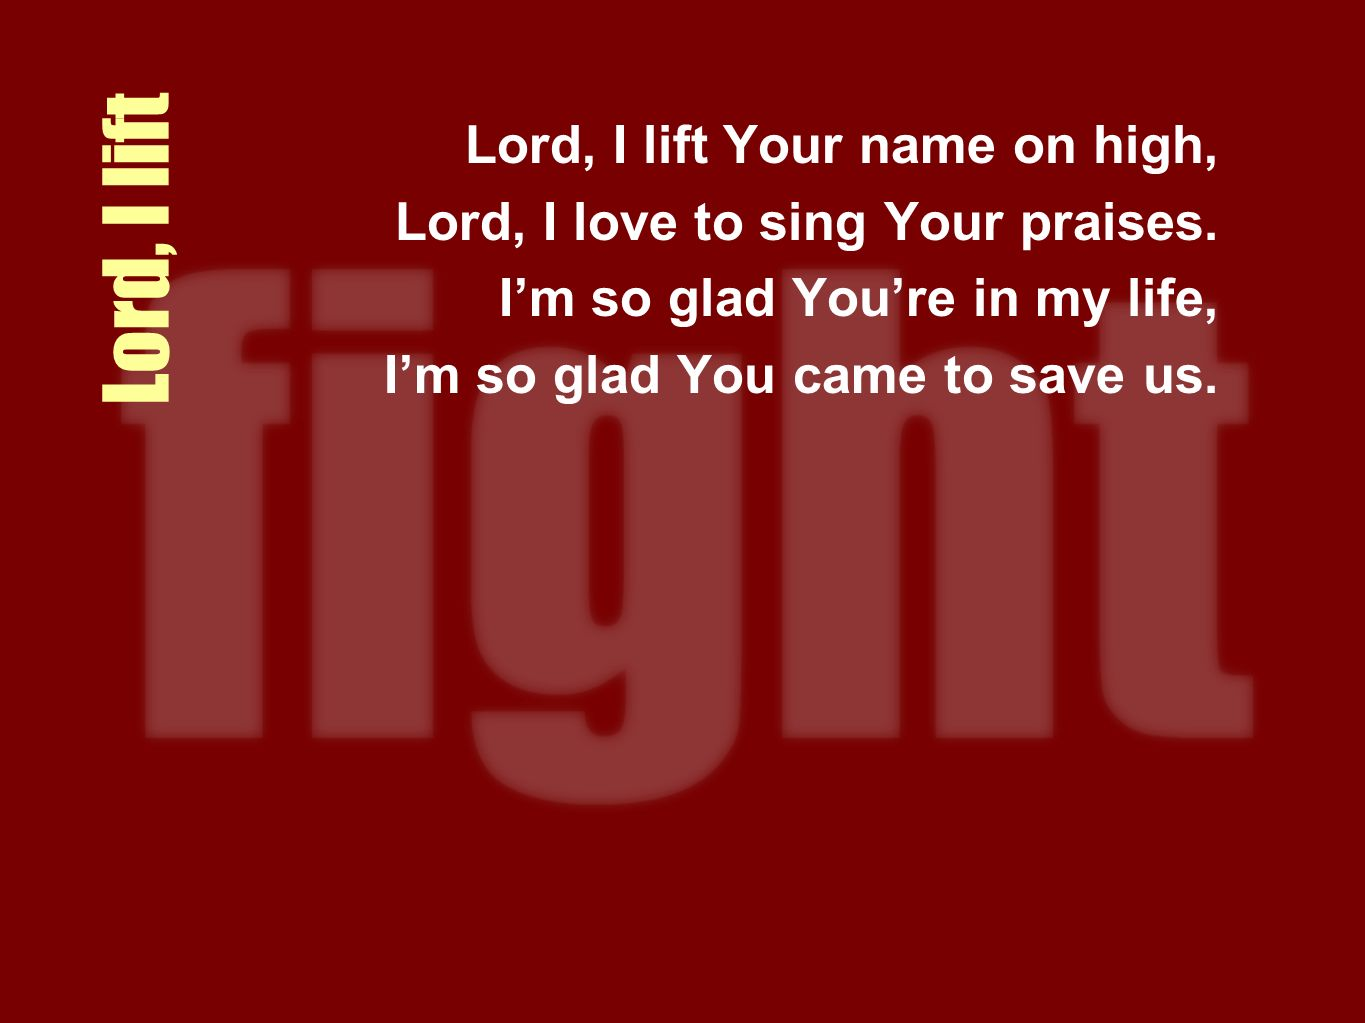 Lord, I lift Lord, I lift Your name on high, Lord, I love to sing Your praises. Im so glad Youre in my life, Im so glad You came to save us.